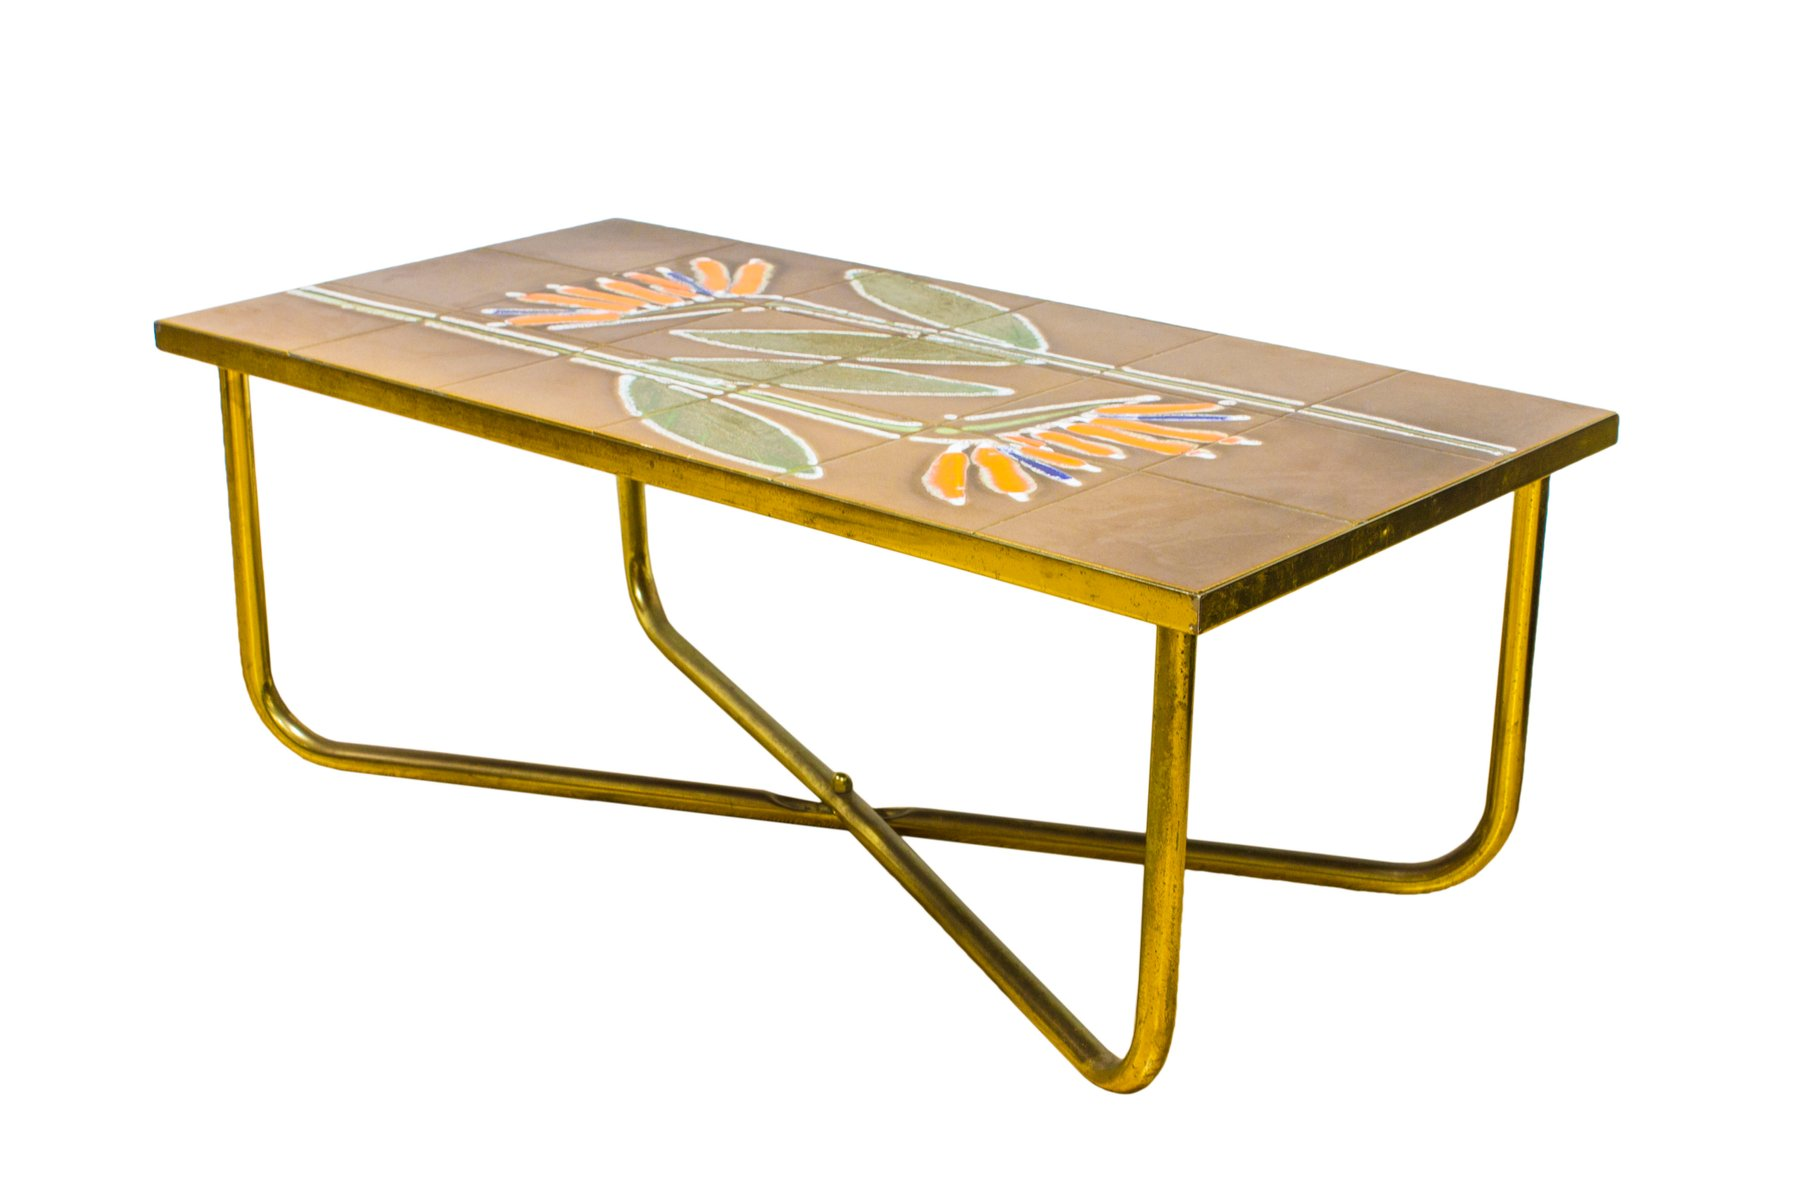 Vintage danish tiled coffee side table from adri for sale at pamono vintage danish tiled coffee side table from adri 6 85100 price per piece geotapseo Choice Image